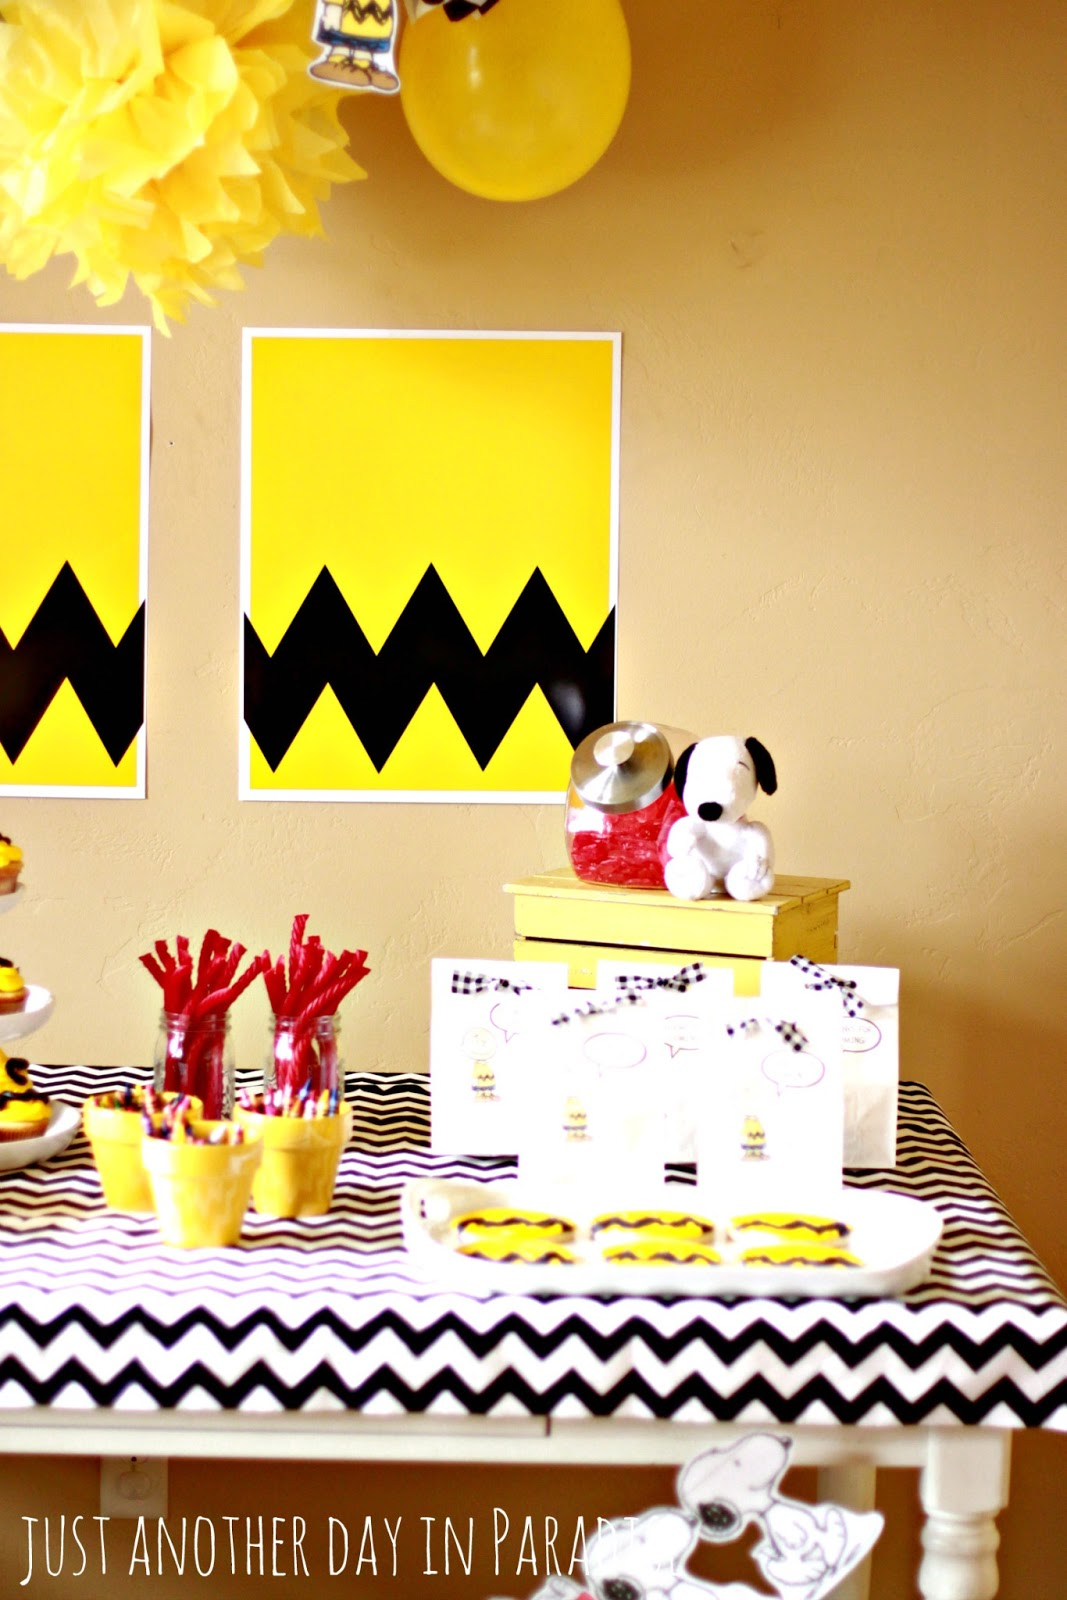 Larissa Another Day: A Charlie Brown Birthday Party